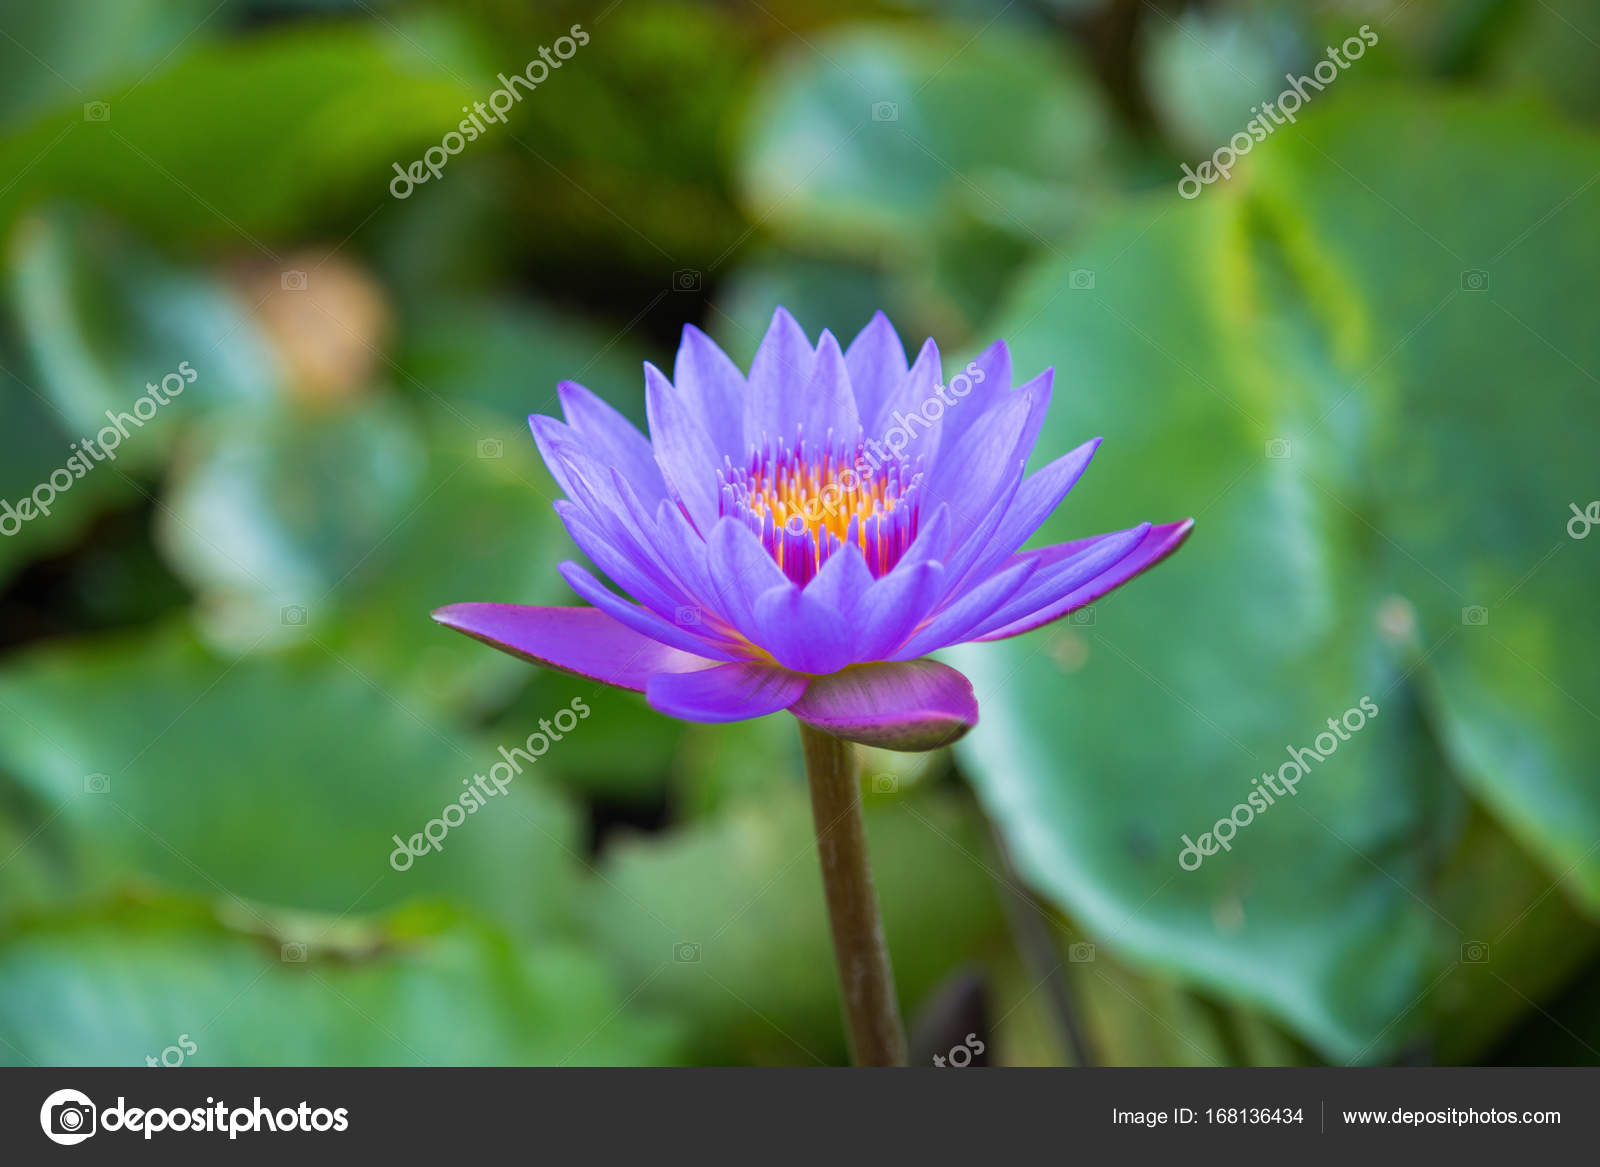 Lotus flower in pond at marina bay front singapore stock photo beautiful lotus flower in pond at marina bay front singapore photo by geargodz izmirmasajfo Gallery